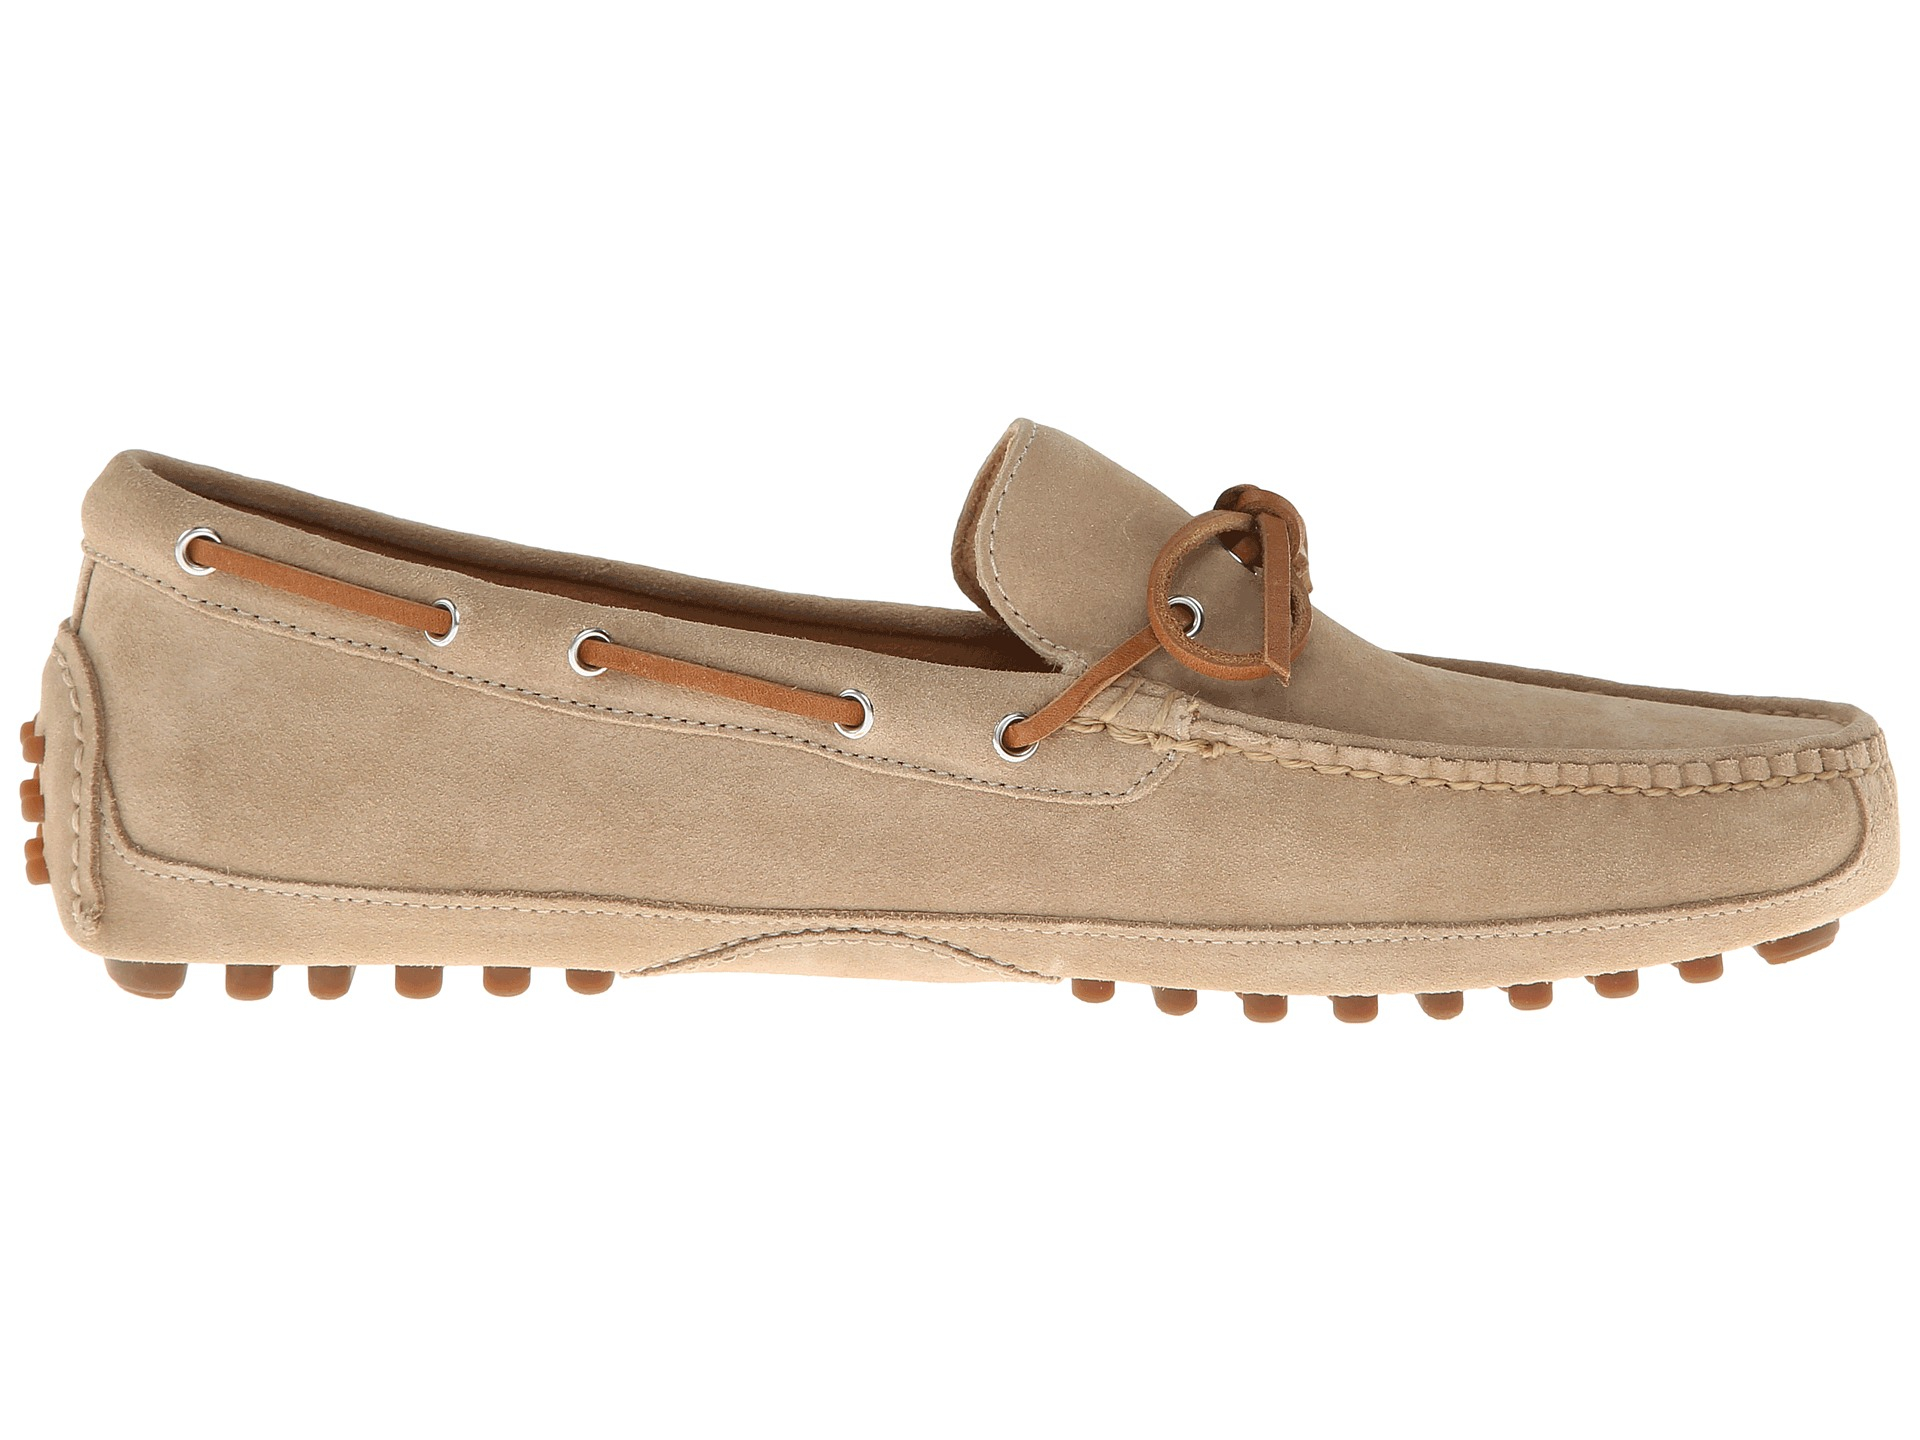 239060c91f2 Lyst - Cole Haan Grant Canoe Camp Moc in Natural for Men